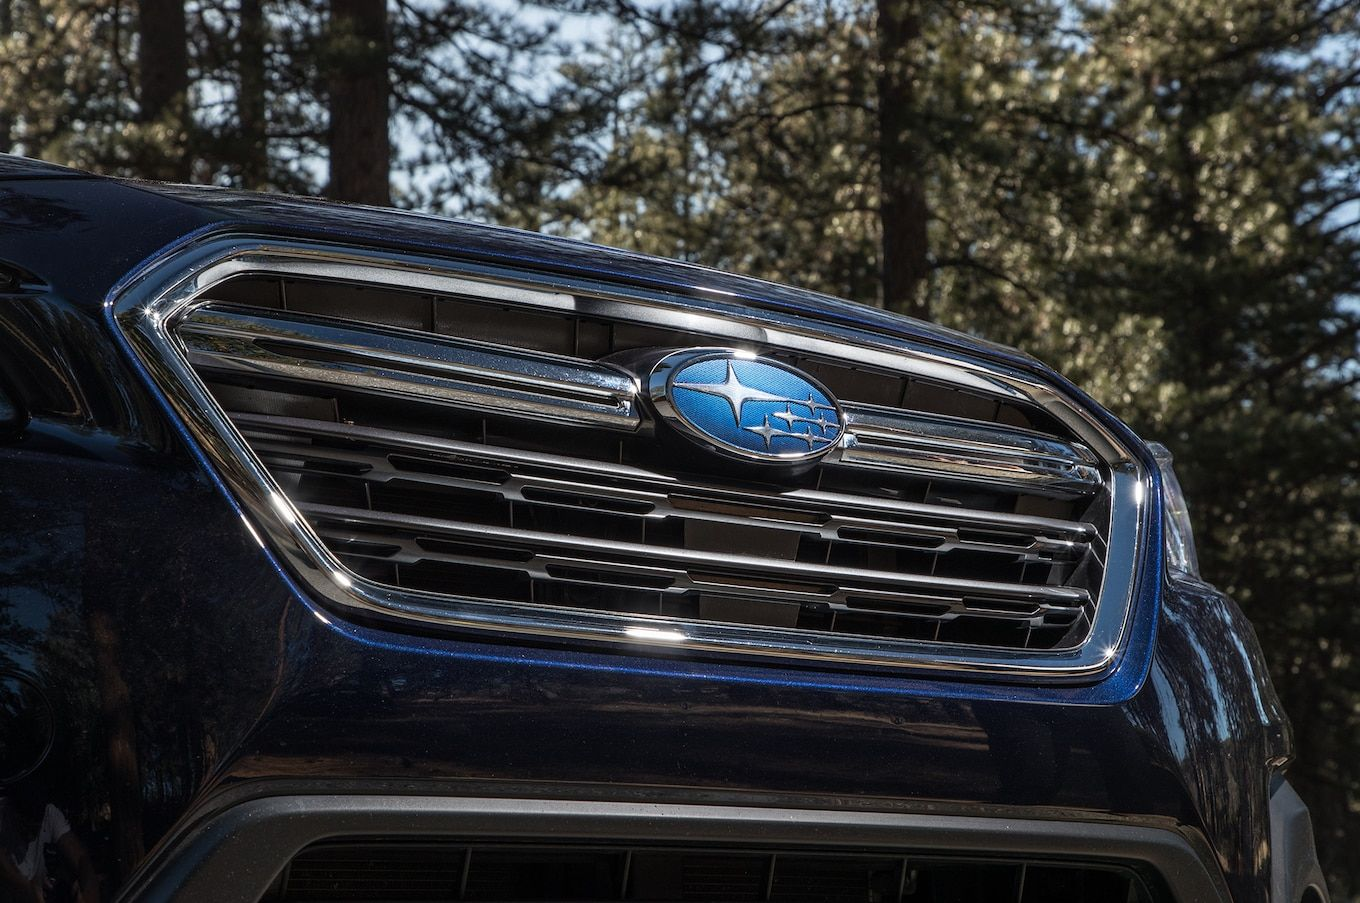 2020 Subaru Outback What To Expect From Subie S Next Wagon Like Crossover News Cars Carnews Subaru Outback Subaru New Cars